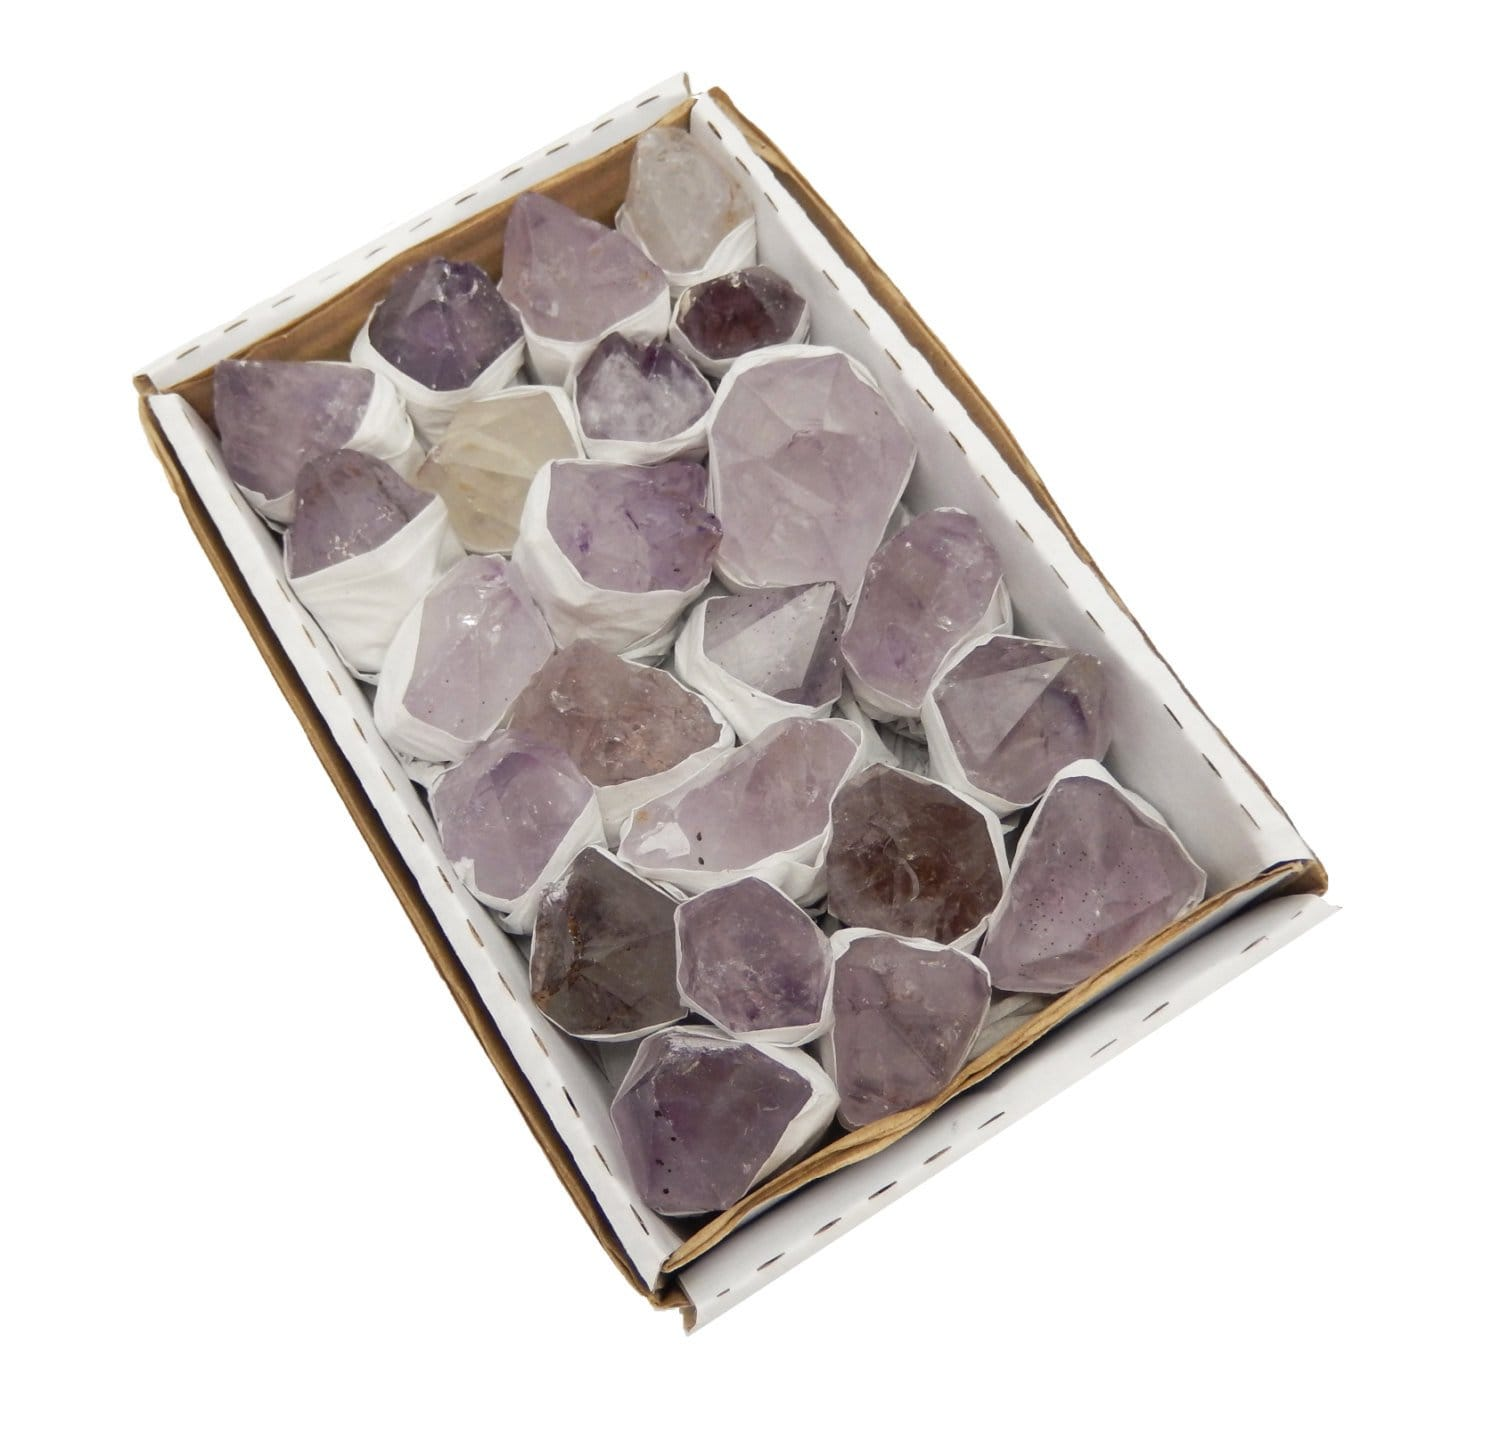 Amethyst - Amethyst By Piece- High Quality Amethyst Points Brazilian Crystals And Stones - Crystal Collection - Reiki Crystals - By Piece (RK145B2)